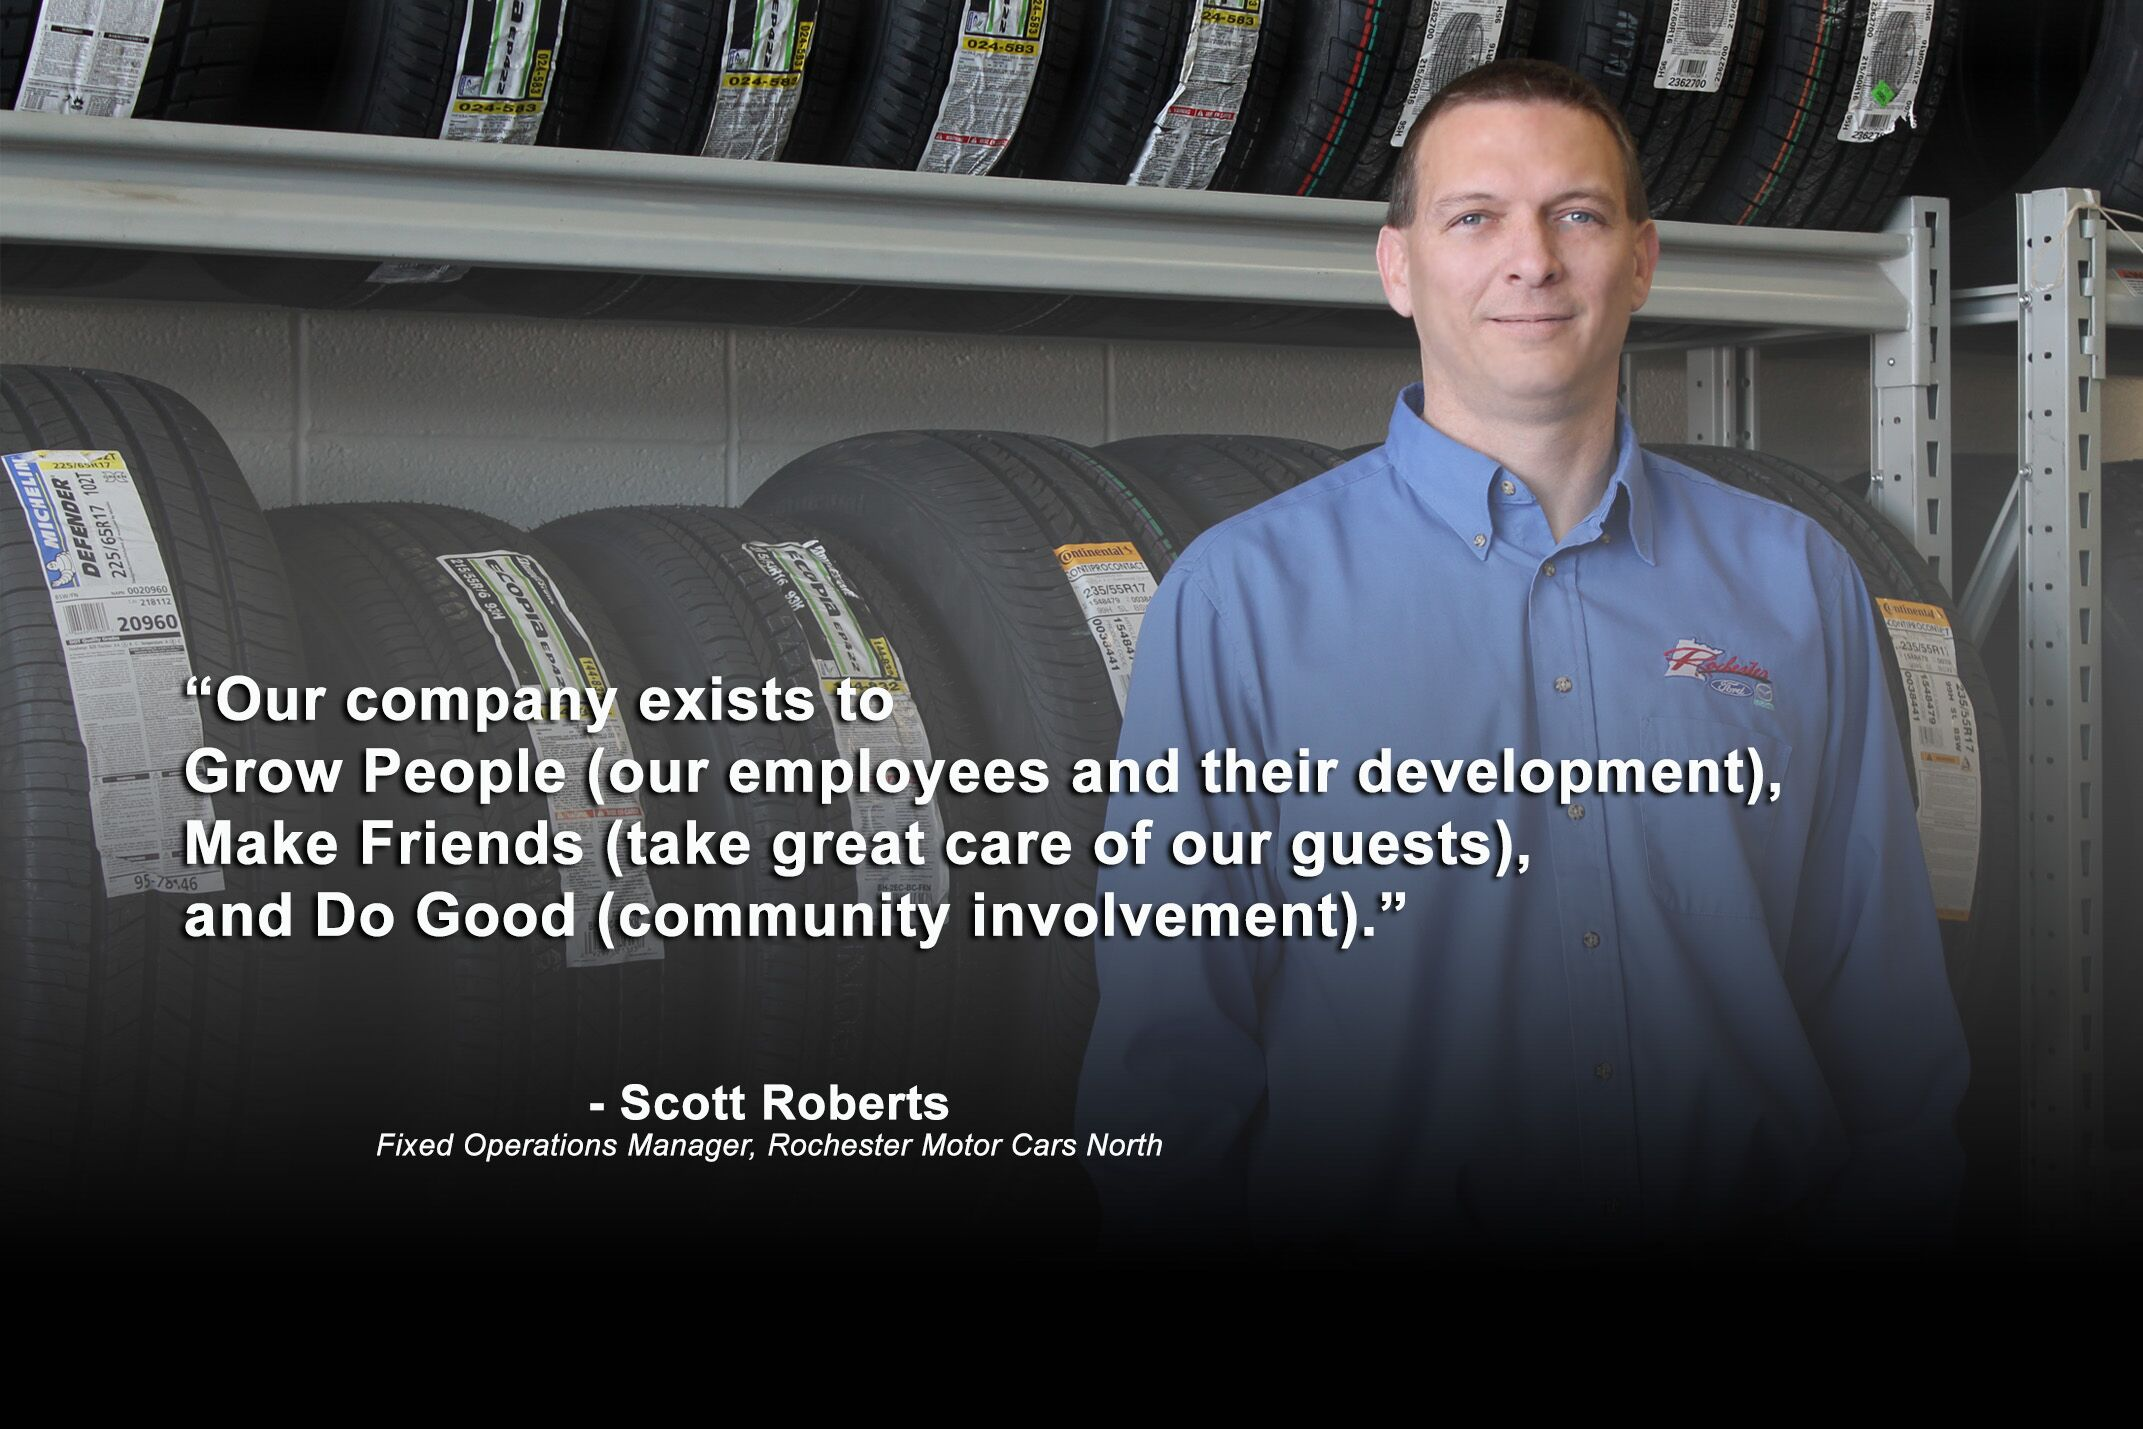 scott roberts fixed operations director of north stores of rochester motor cars - Fixed Operations Director